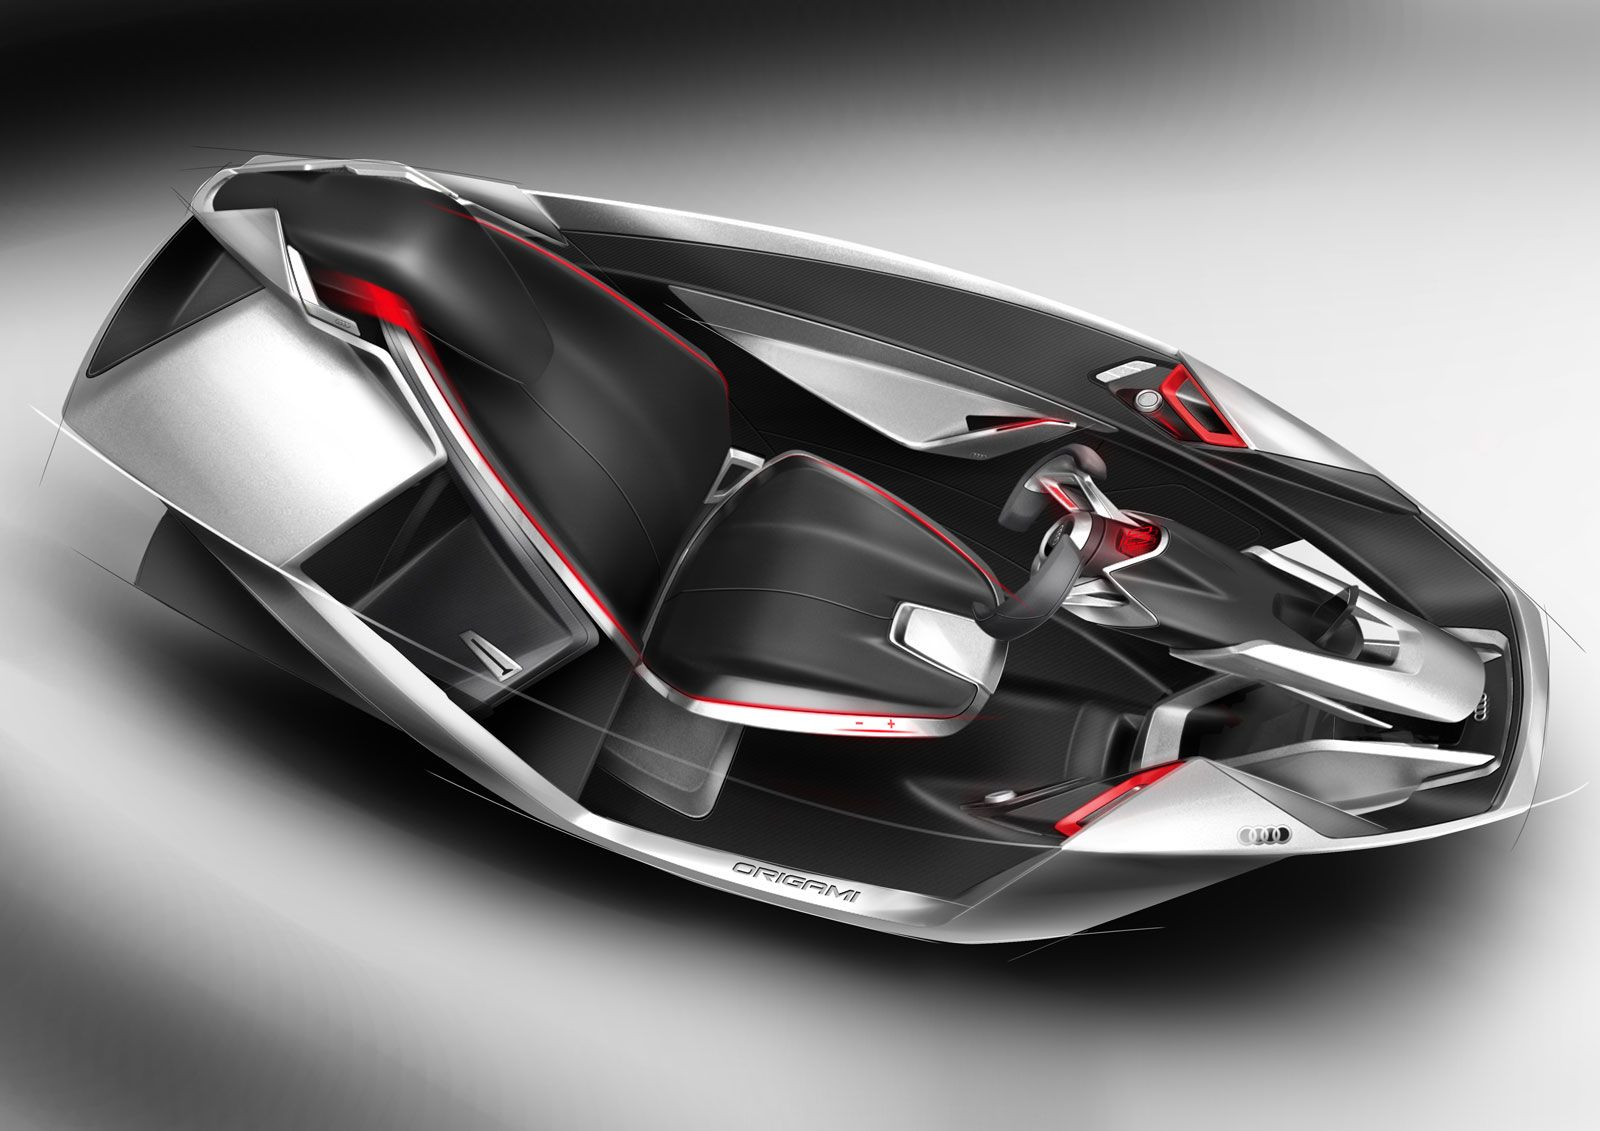 Spd Concept Car Interior Design Sketches Interior Pinterest